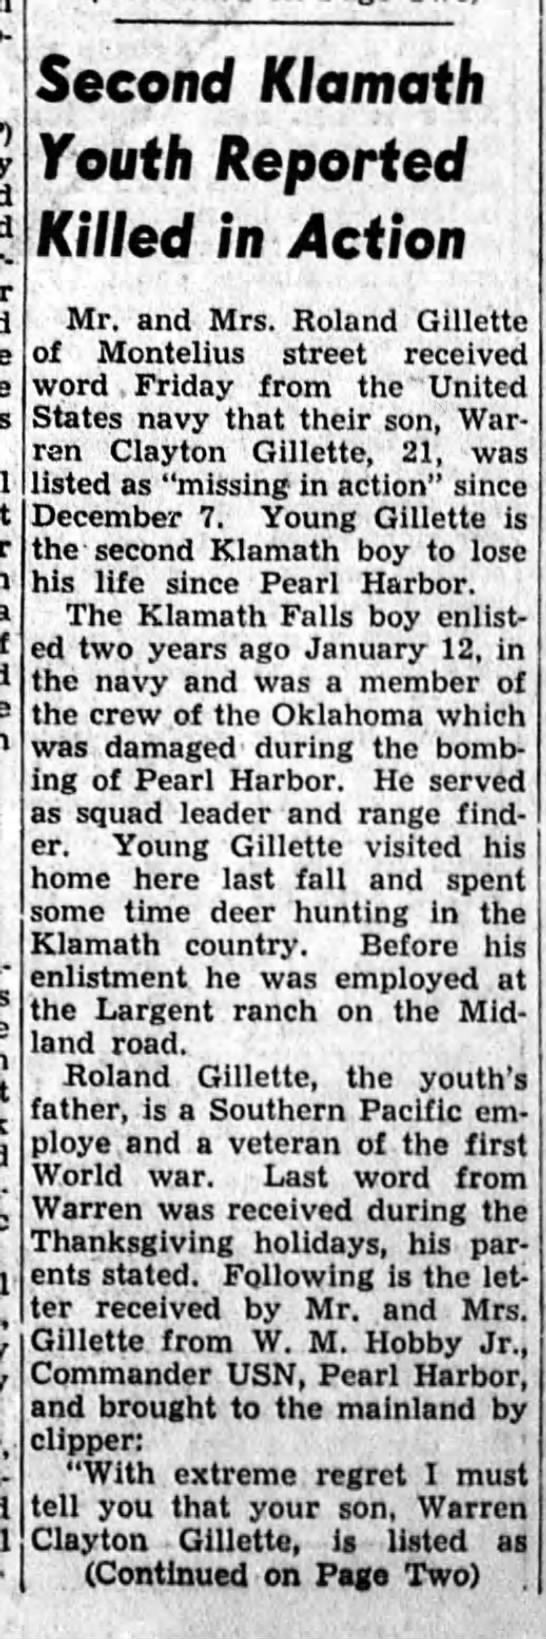 Gillette news clipping (part 1)